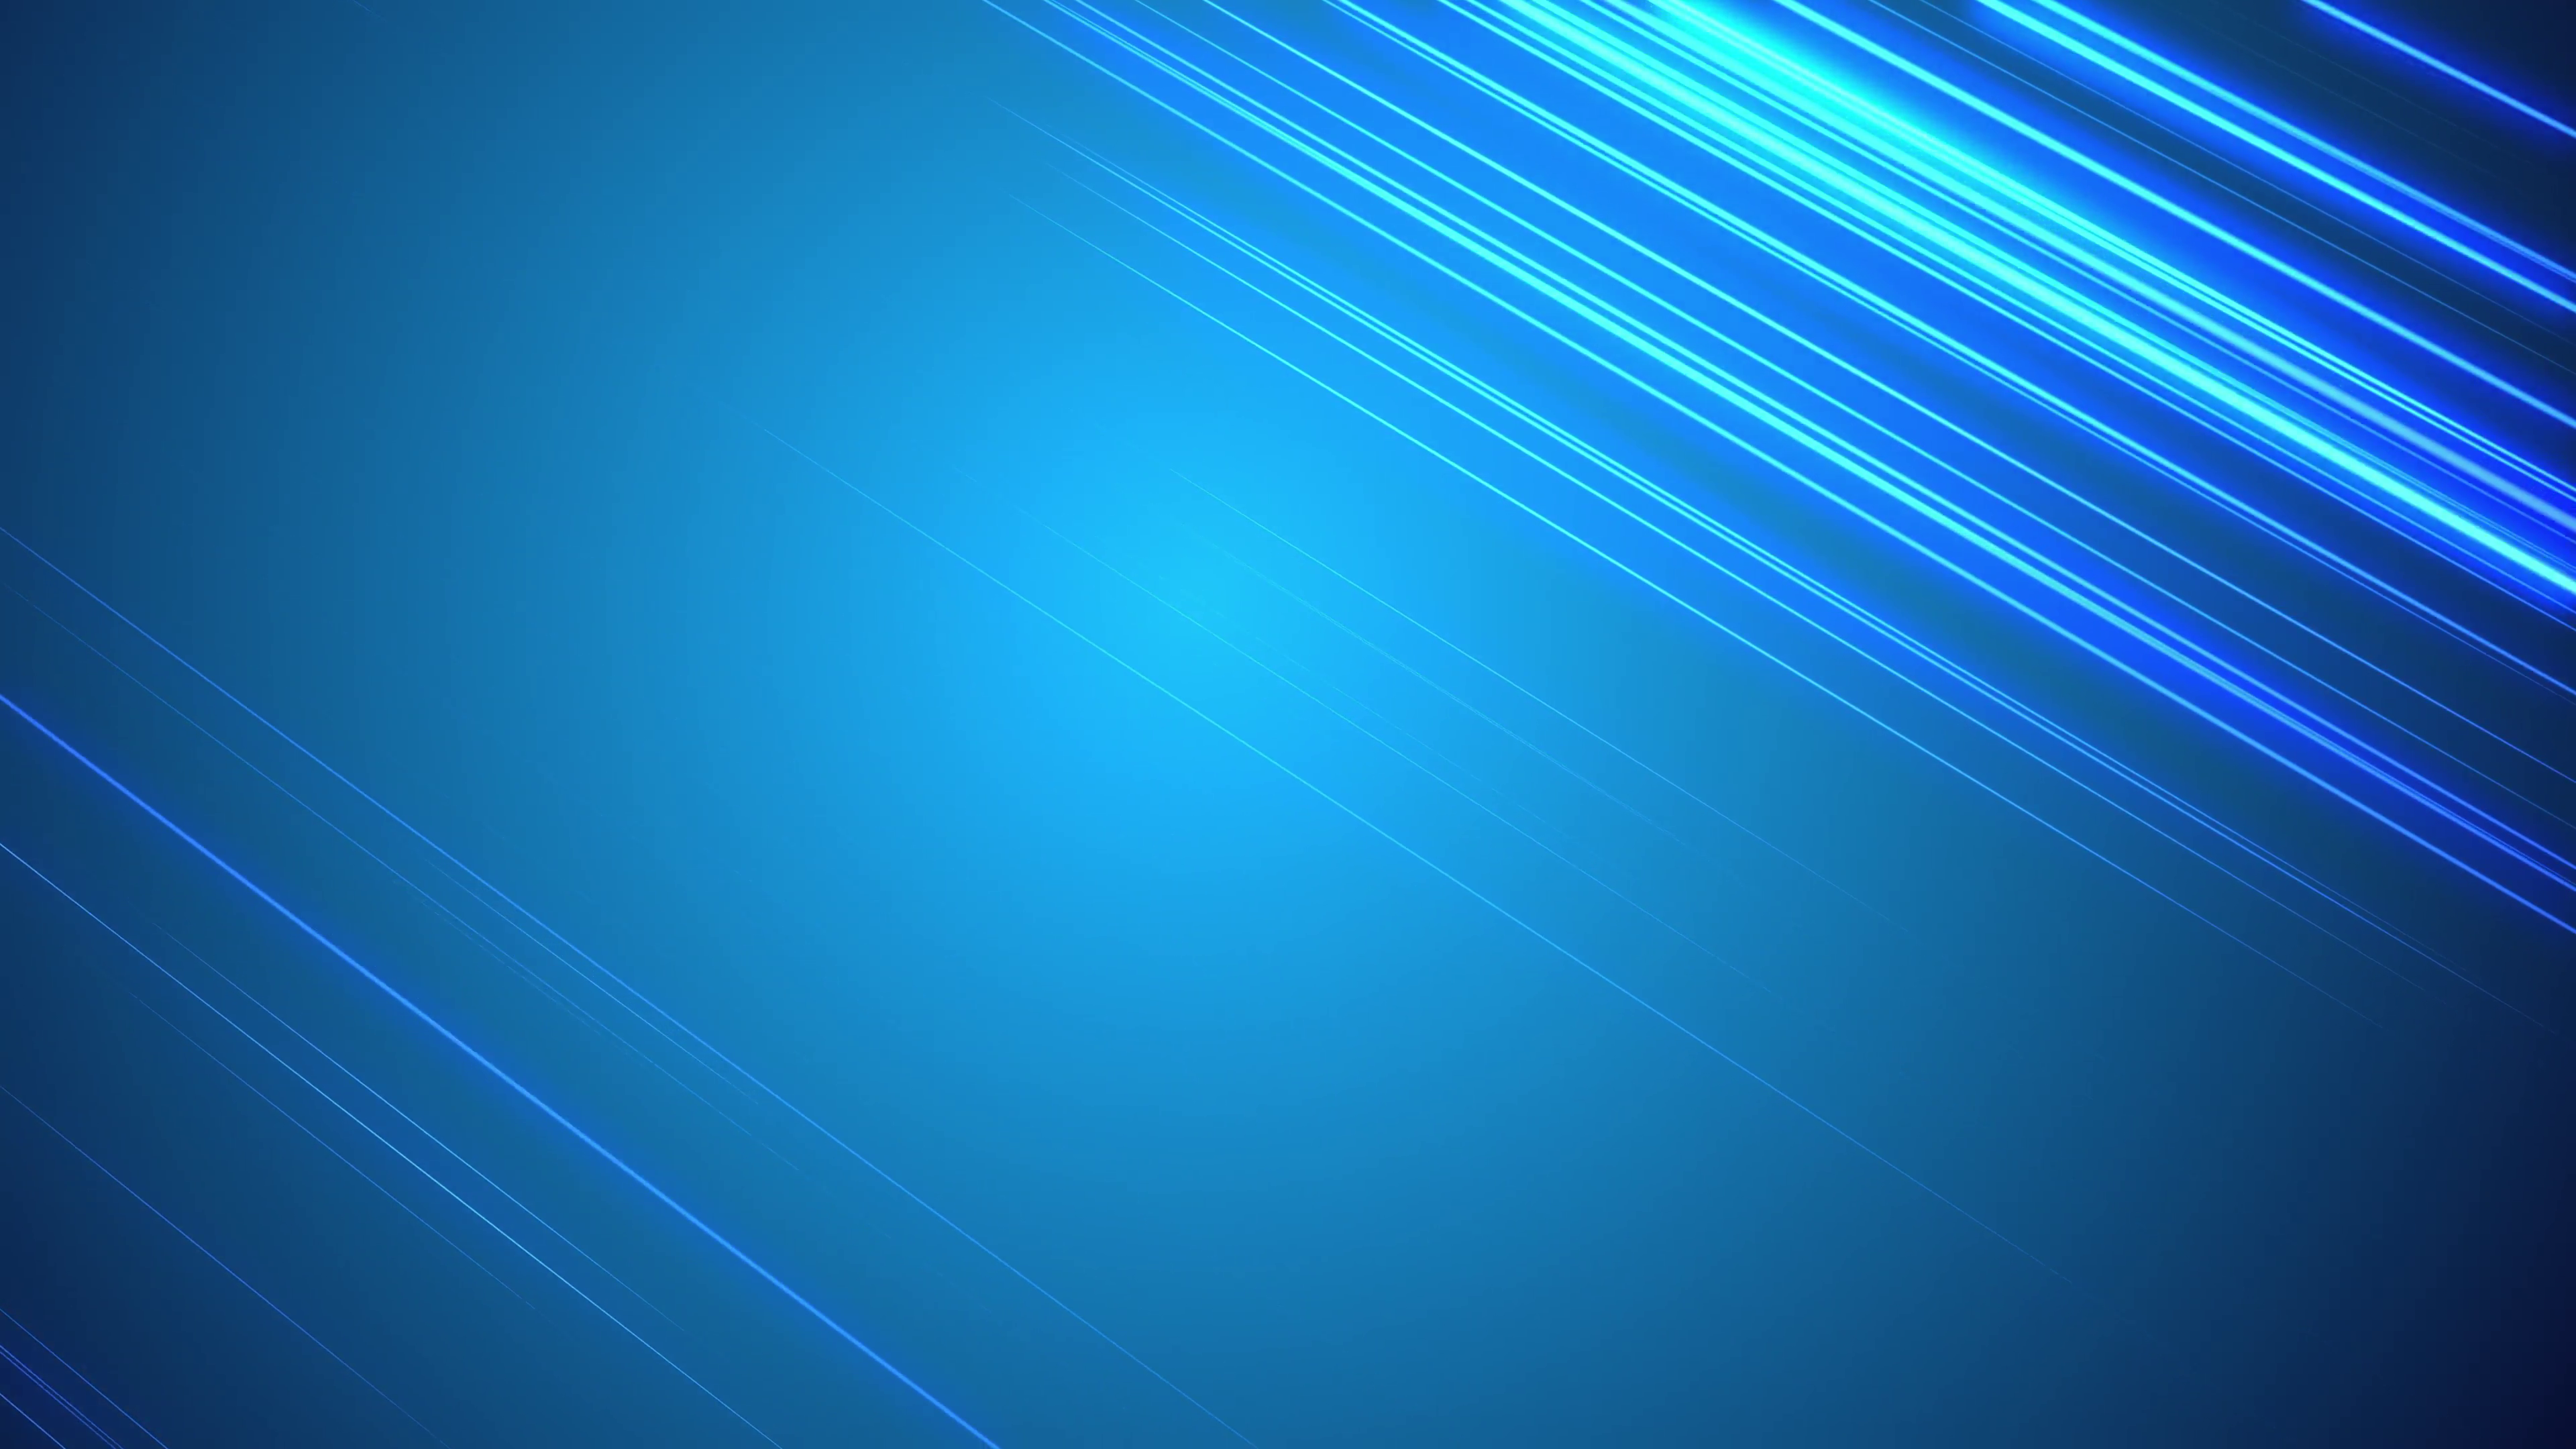 Free photo: Light lines background - Abstract, Night ...